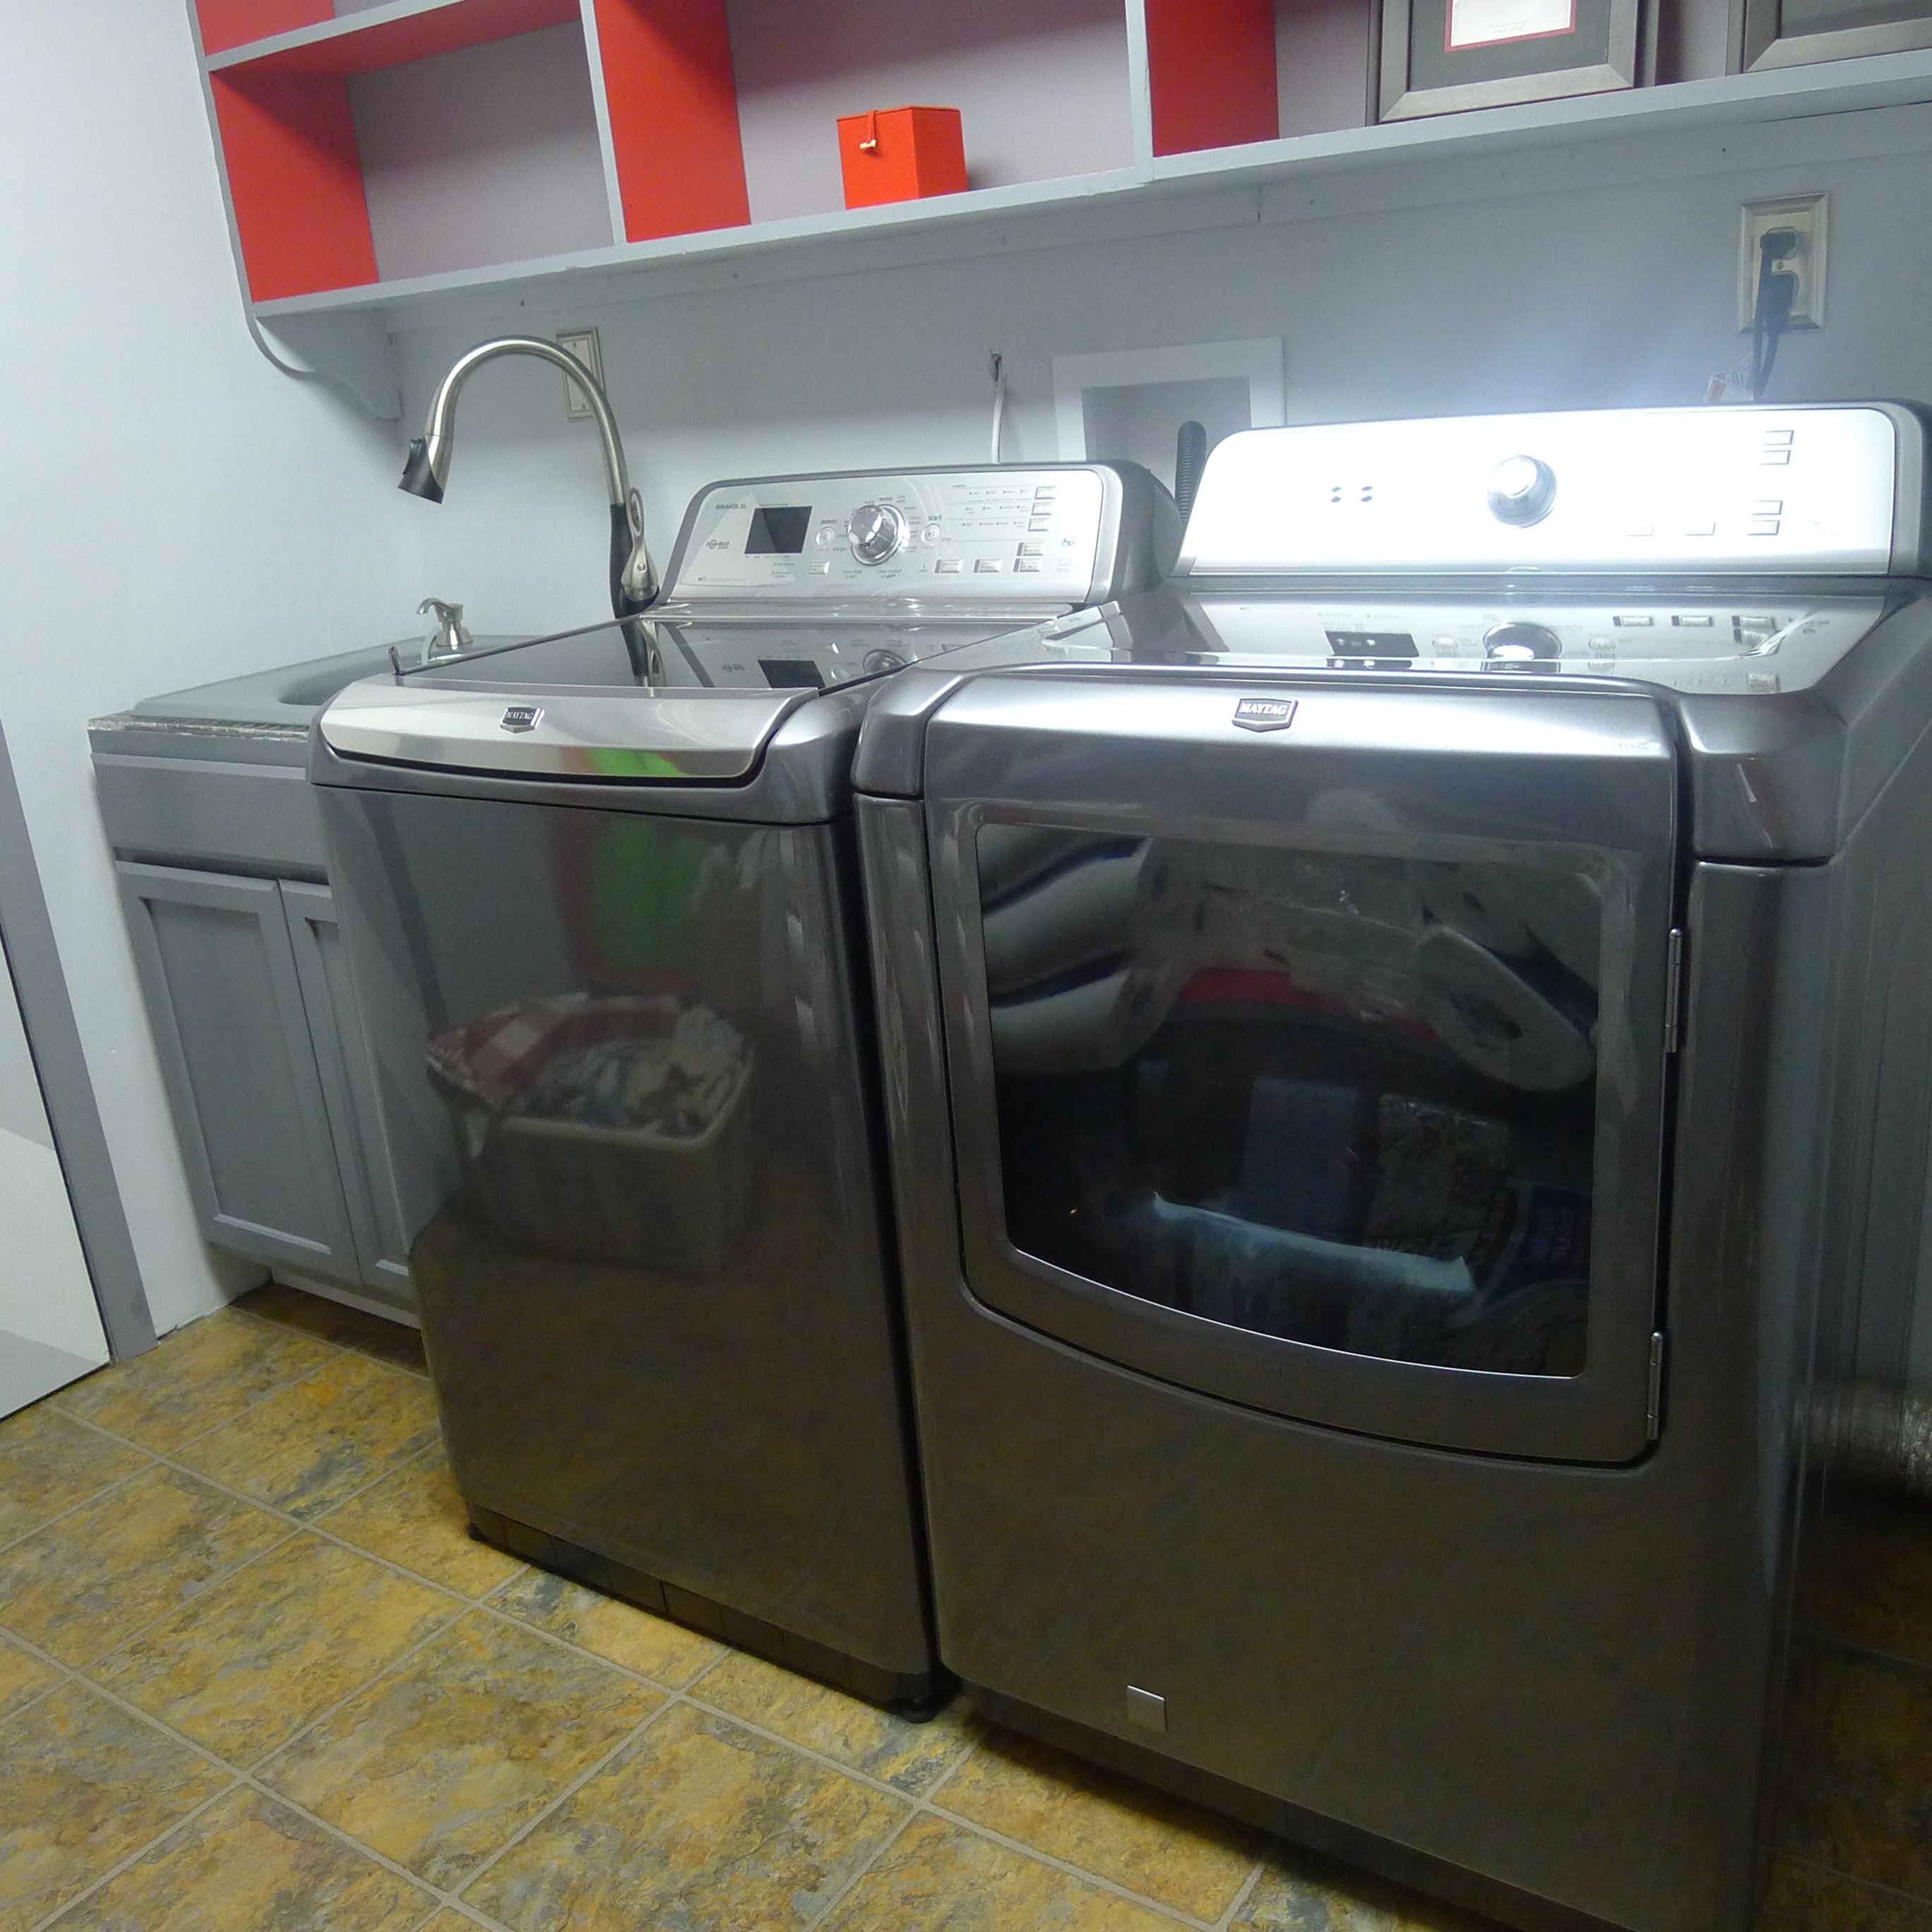 This Maytag Washer And Dryer In Charcoal Gray Set The